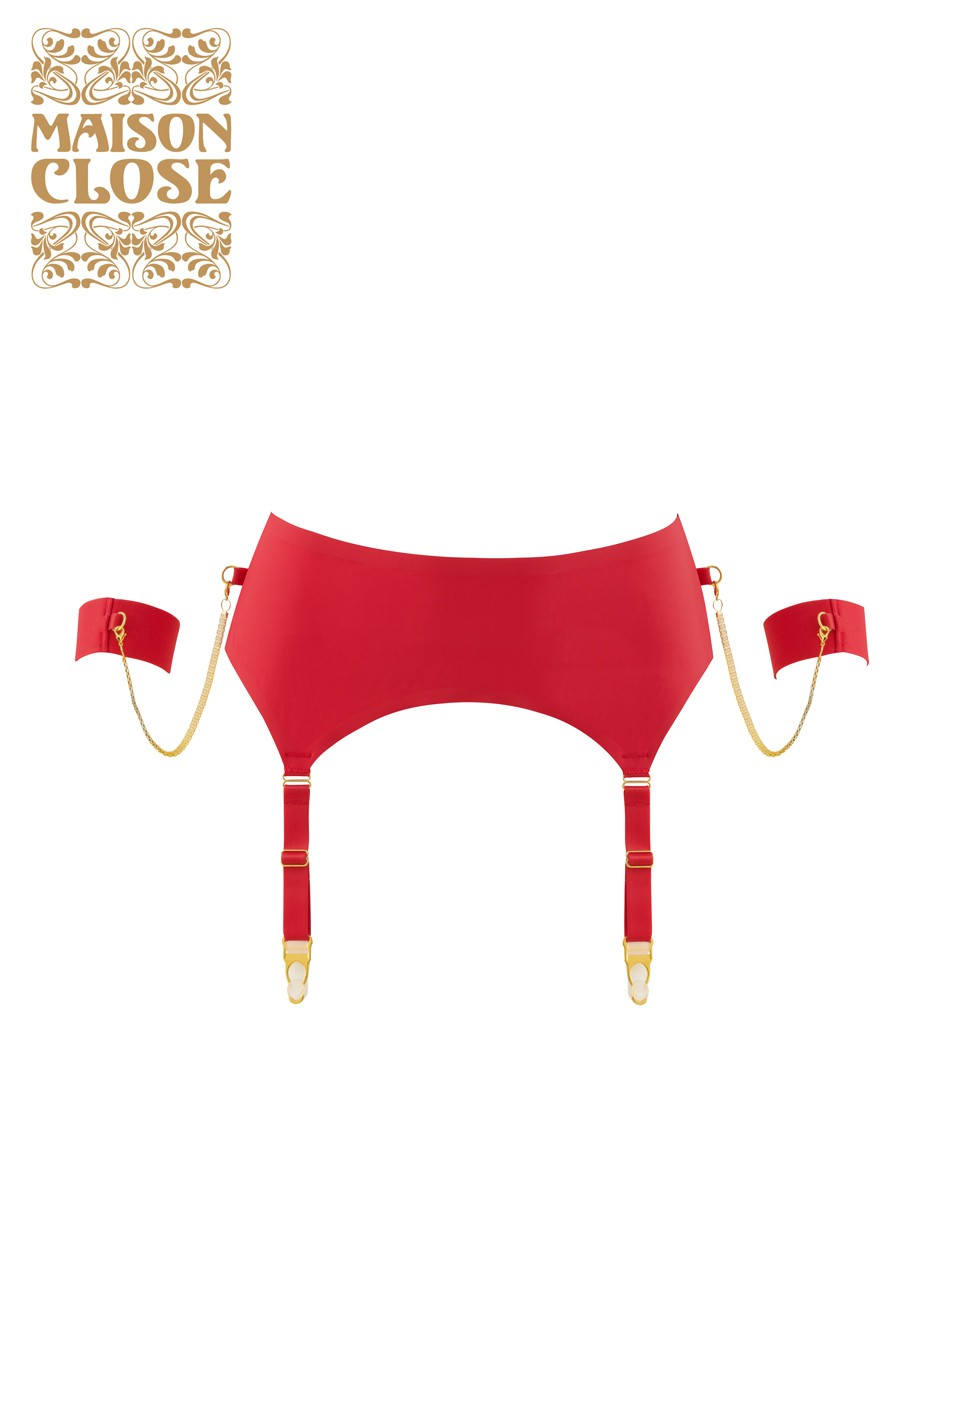 Tapage Nocturne Porte-jarretelles rouge Maison Close